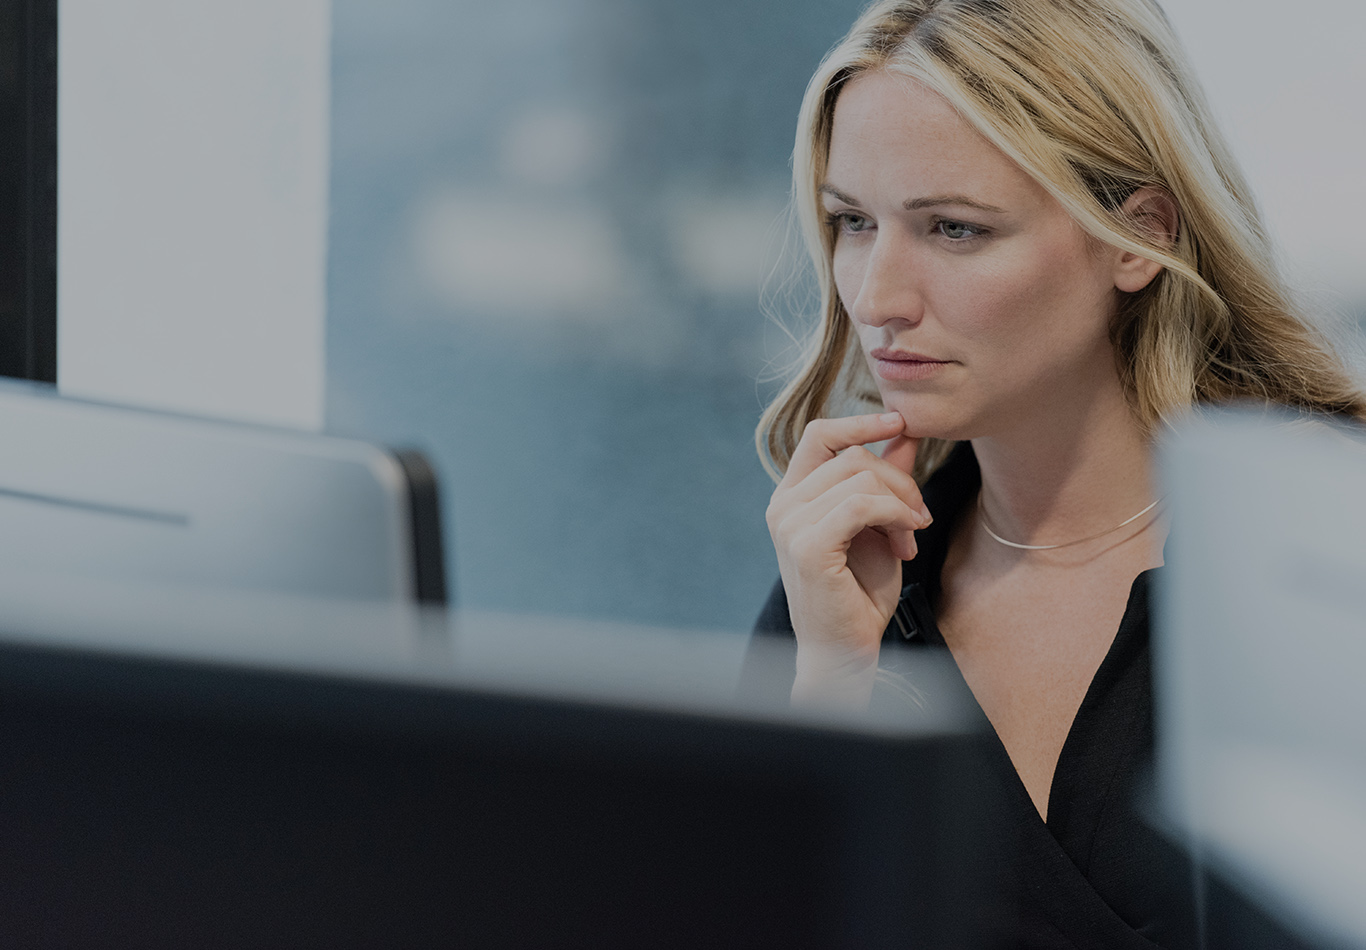 A blonde haired woman with two fingers on her chin is looking at a computer